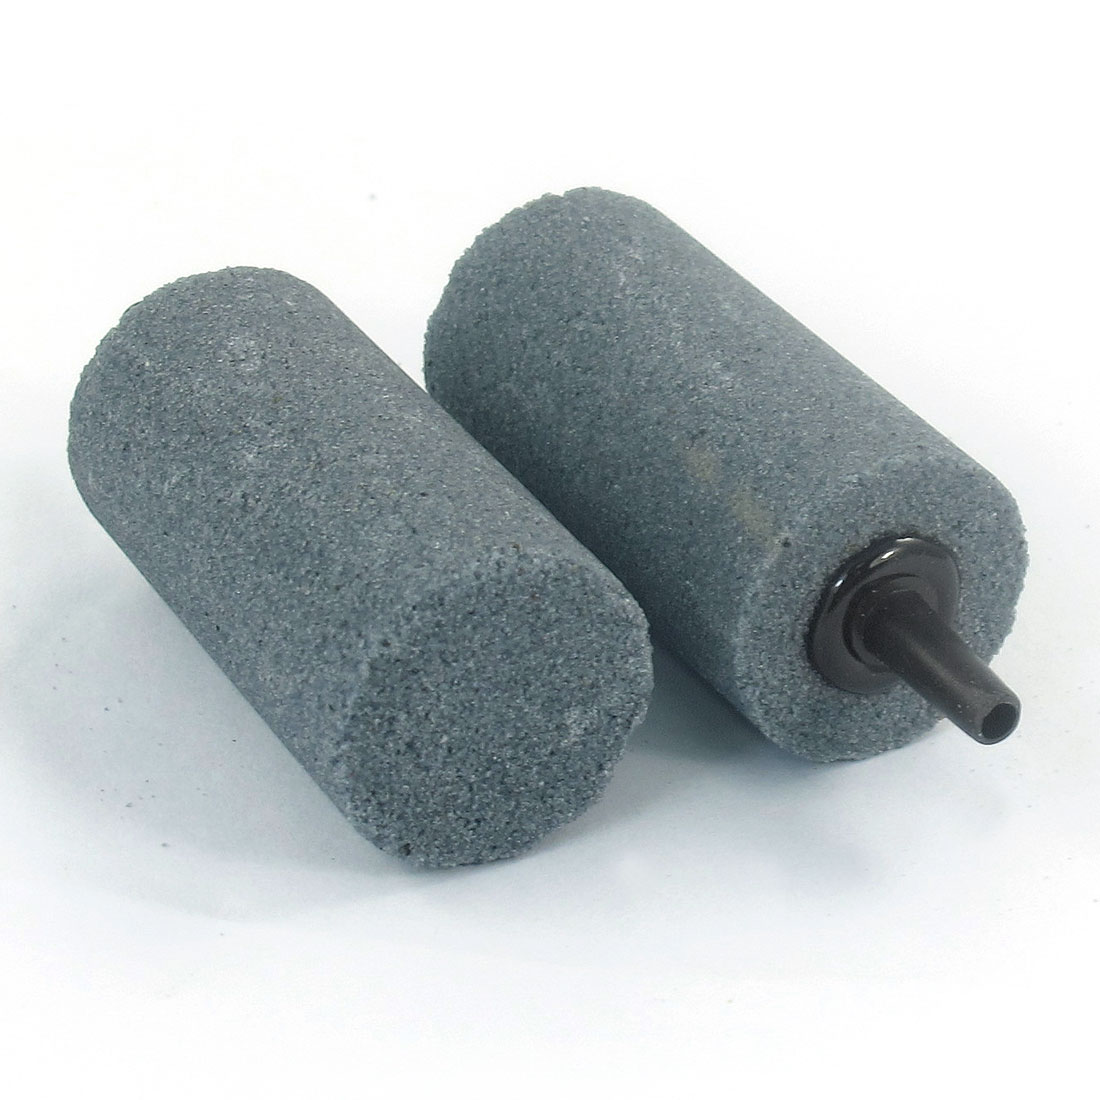 "Fish Tank 1"" x 2"" Cylinder Bubble Release Air Stone 2 Pcs"